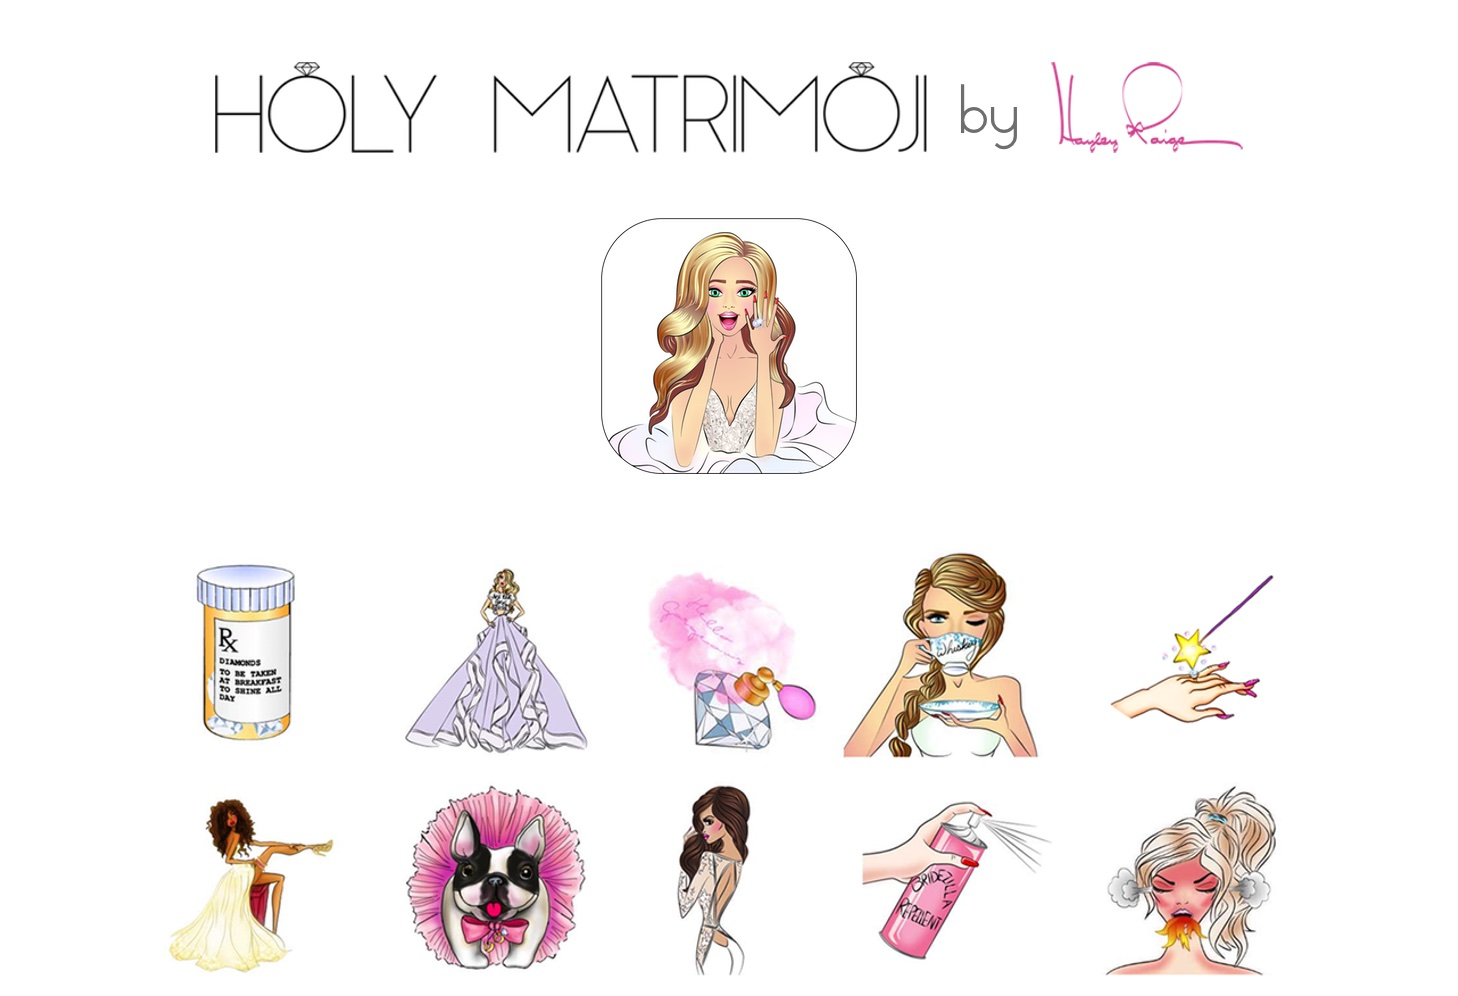 HOLY MATRIMOJI